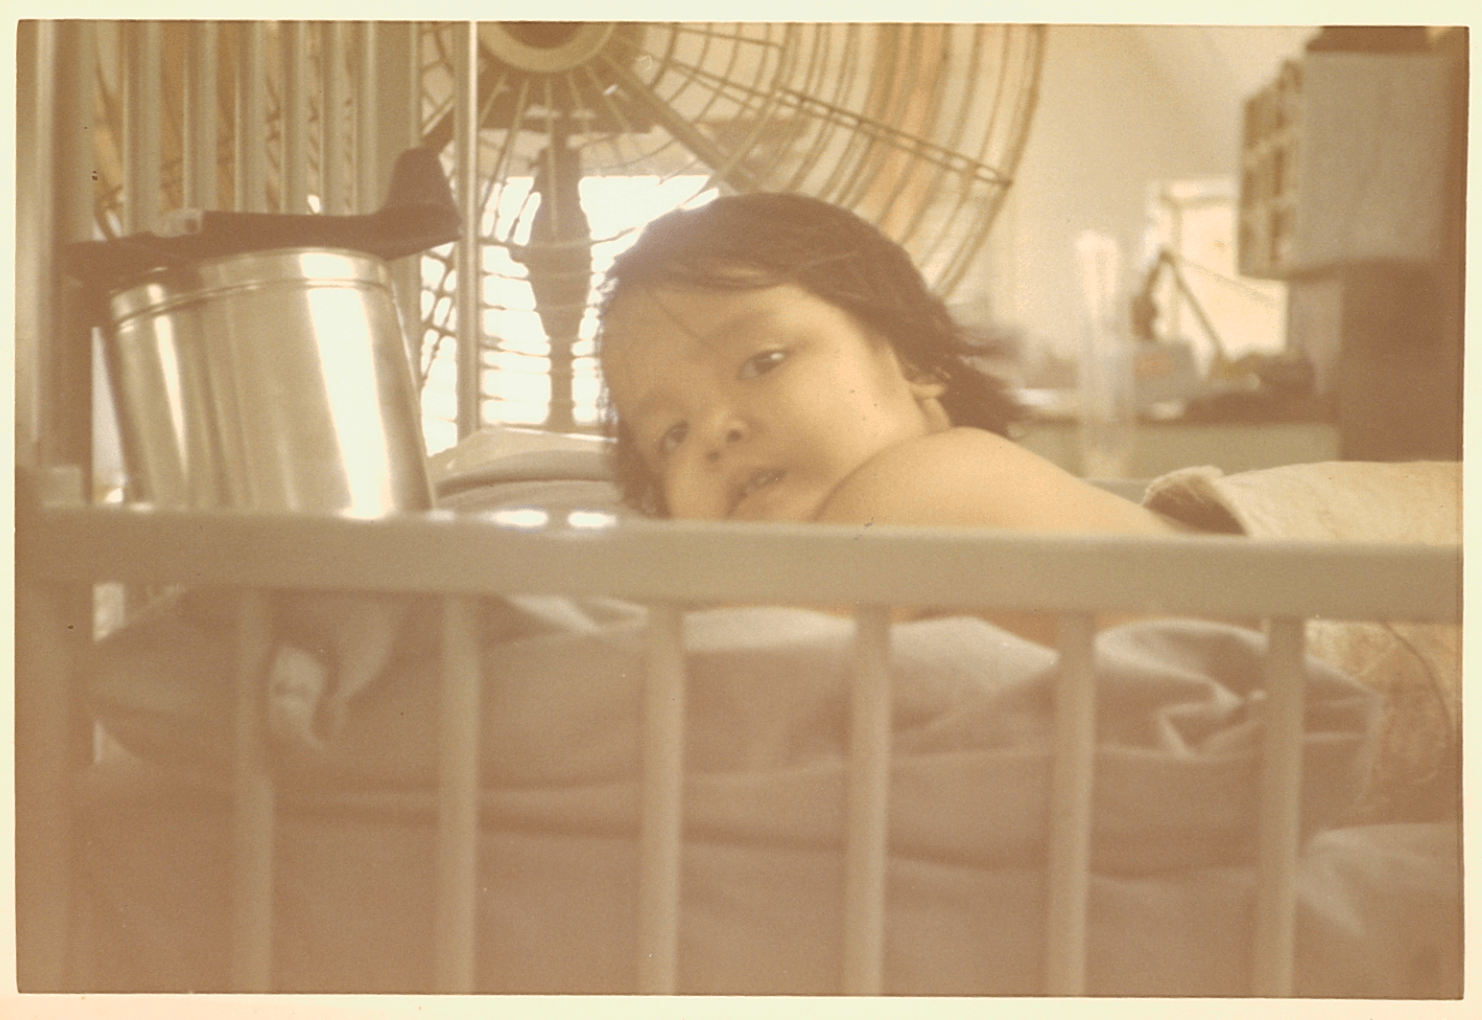 A young Asian child in her hospital bed.